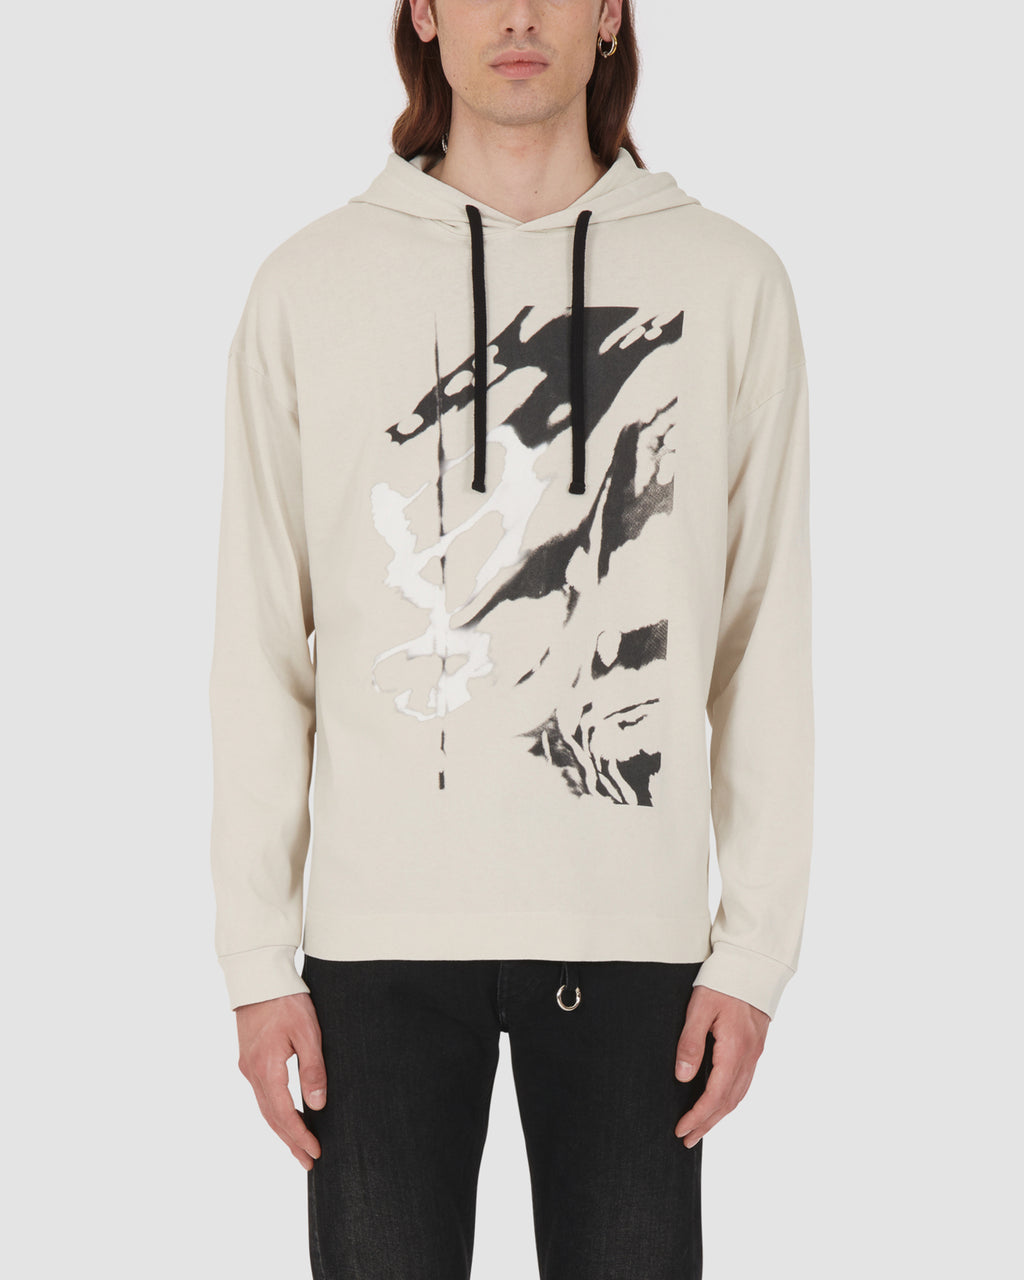 1017 ALYX 9SM | HOODED TEE W DIGITAL PRINT | T-Shirt | Google Shopping, Man, MEN, S20, S20 Drop II, SAND, T-Shirts